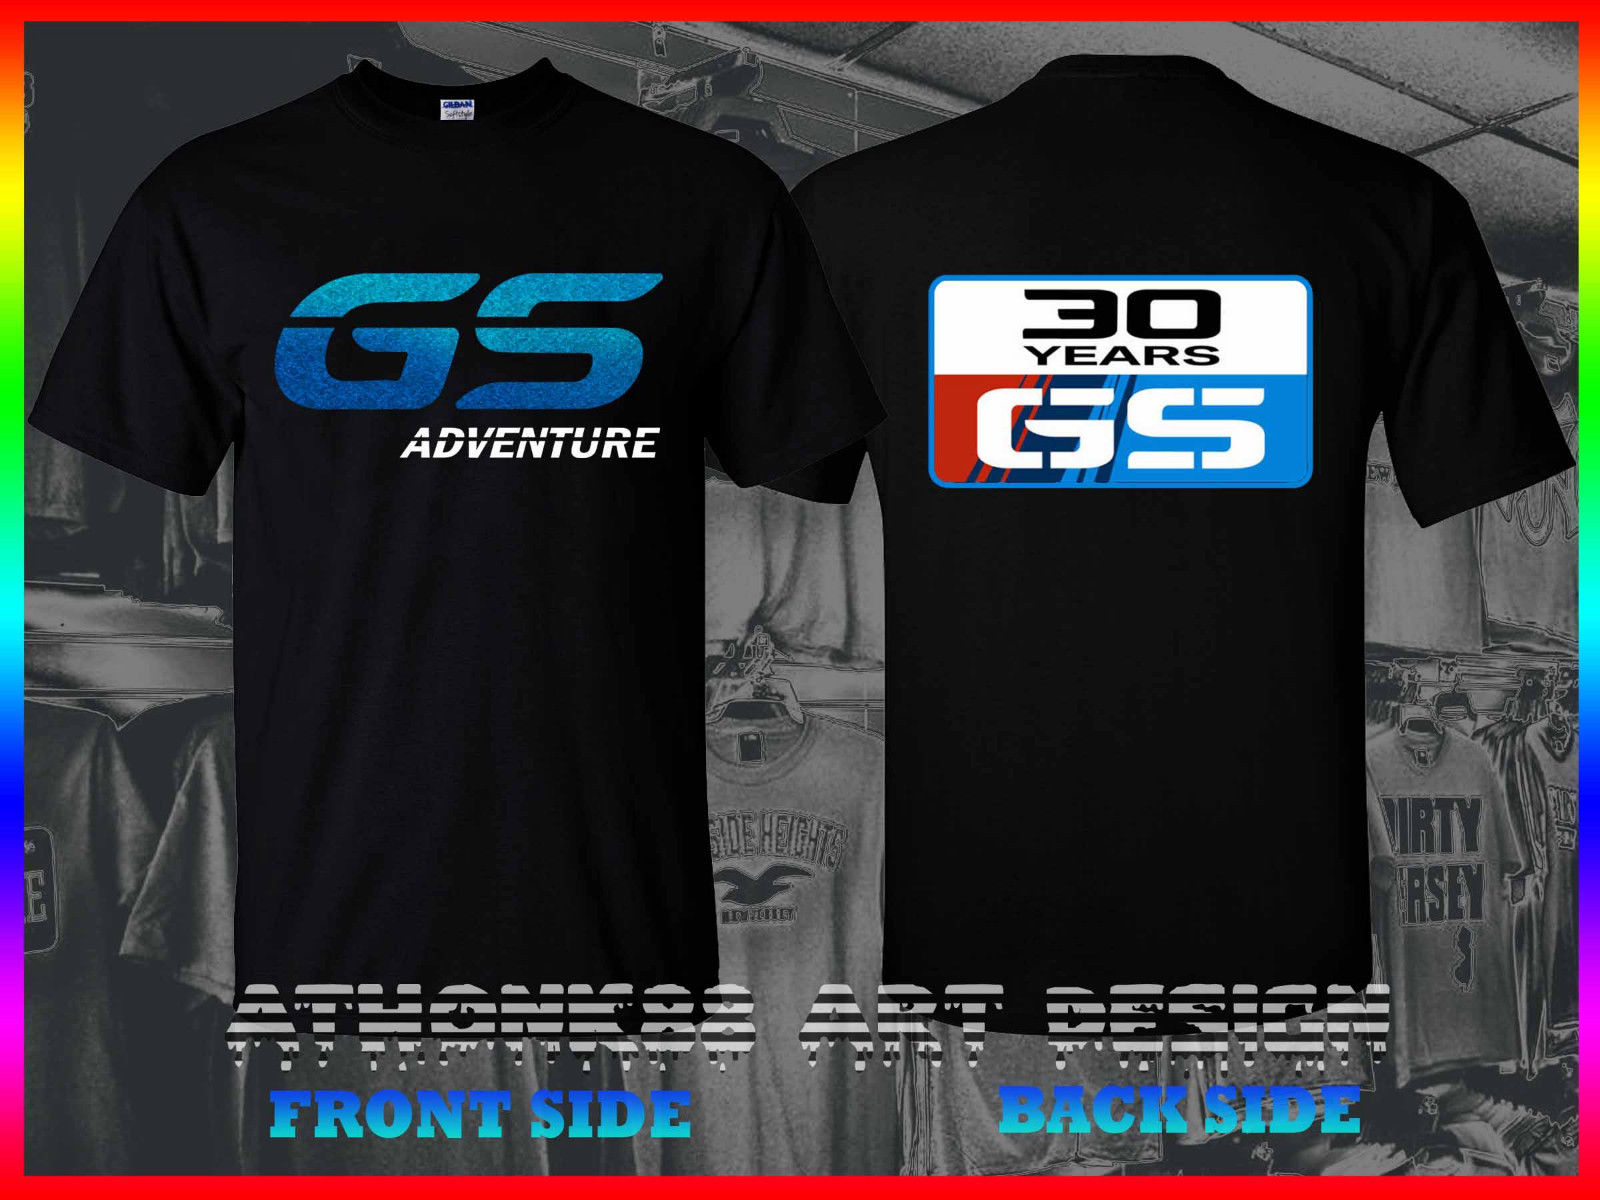 2018 New Casual Cool Tee Shirt RARE Germany Motorcycles GS ADVENTURE 30 YEARS R1200GS ONE GS TEE SHIRT Hot Sale T-shirt